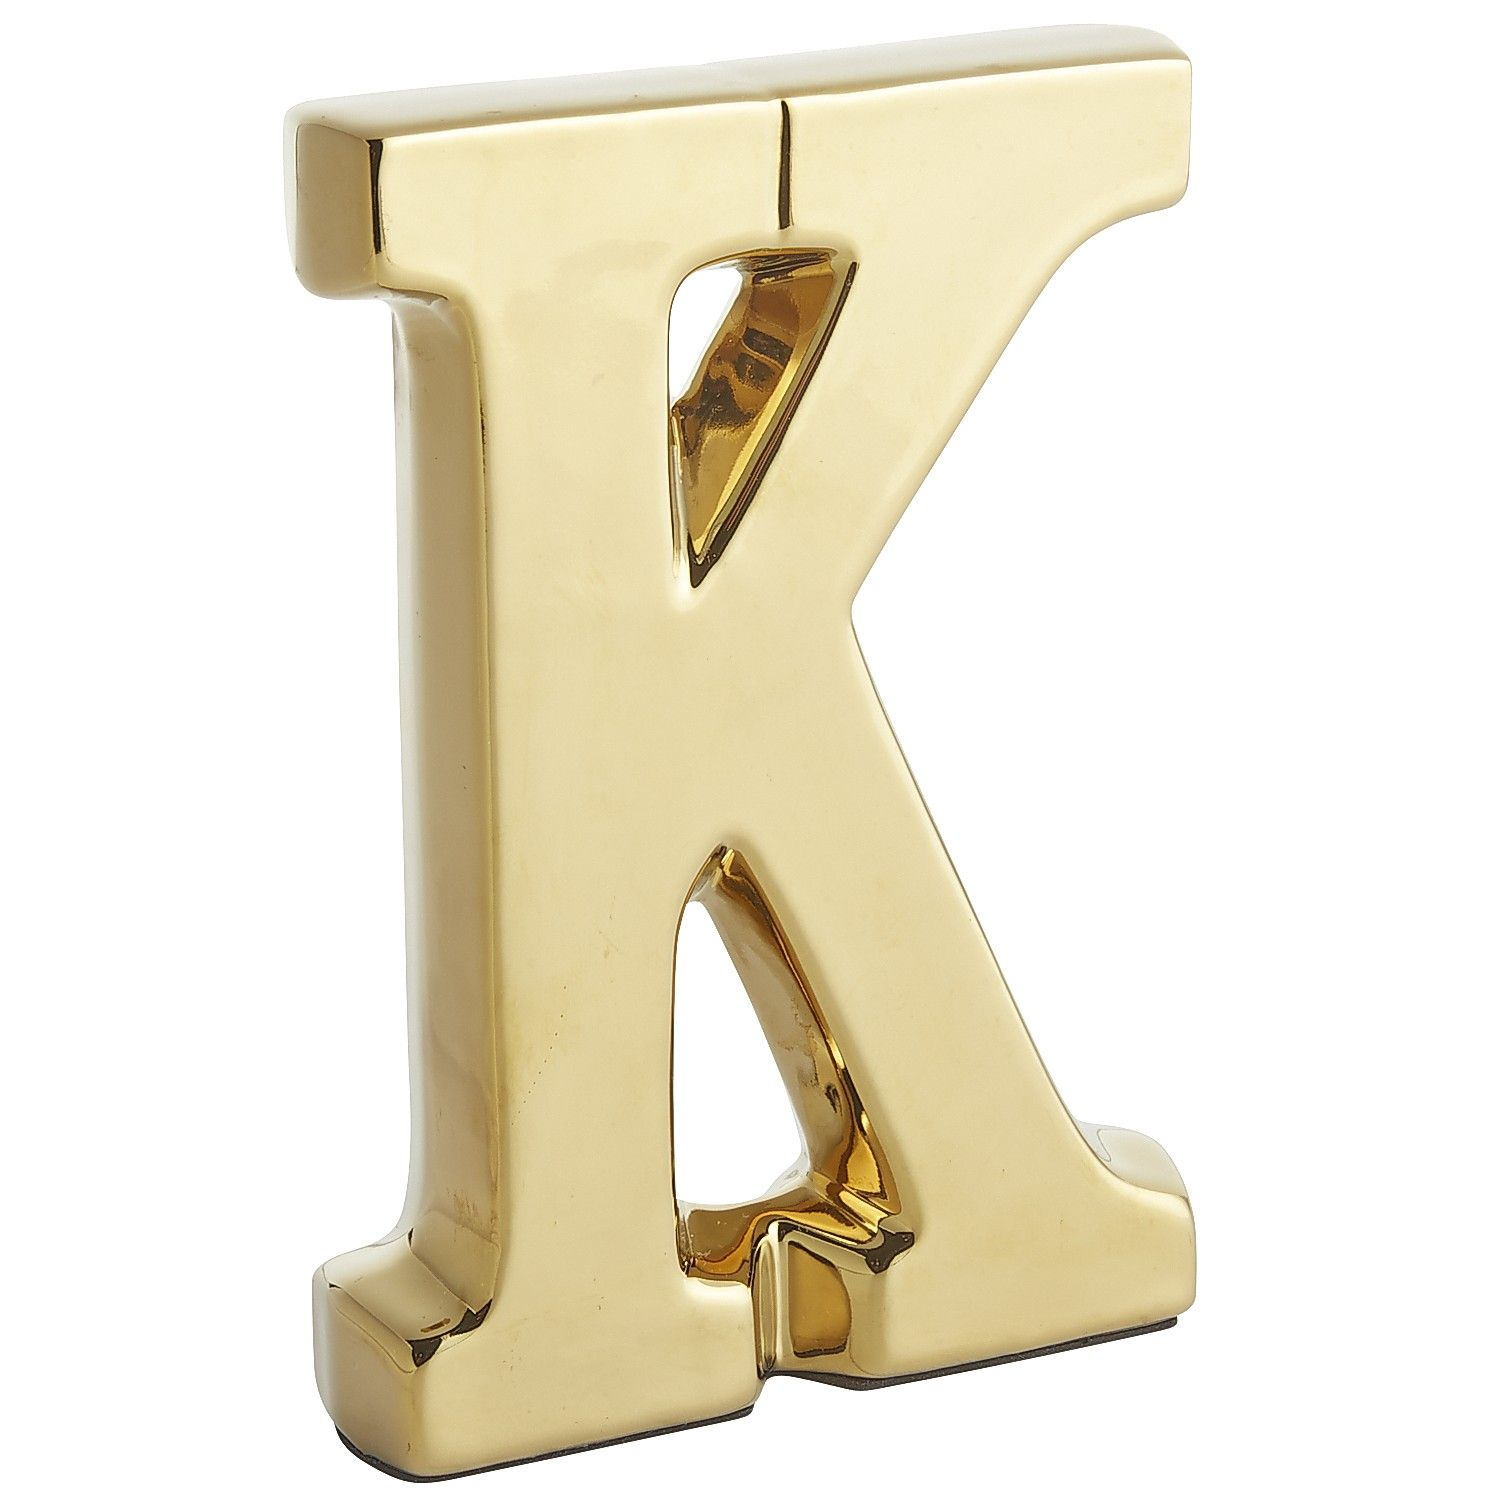 Monogram Ceramic Letter Gold K Earthenware Decor House